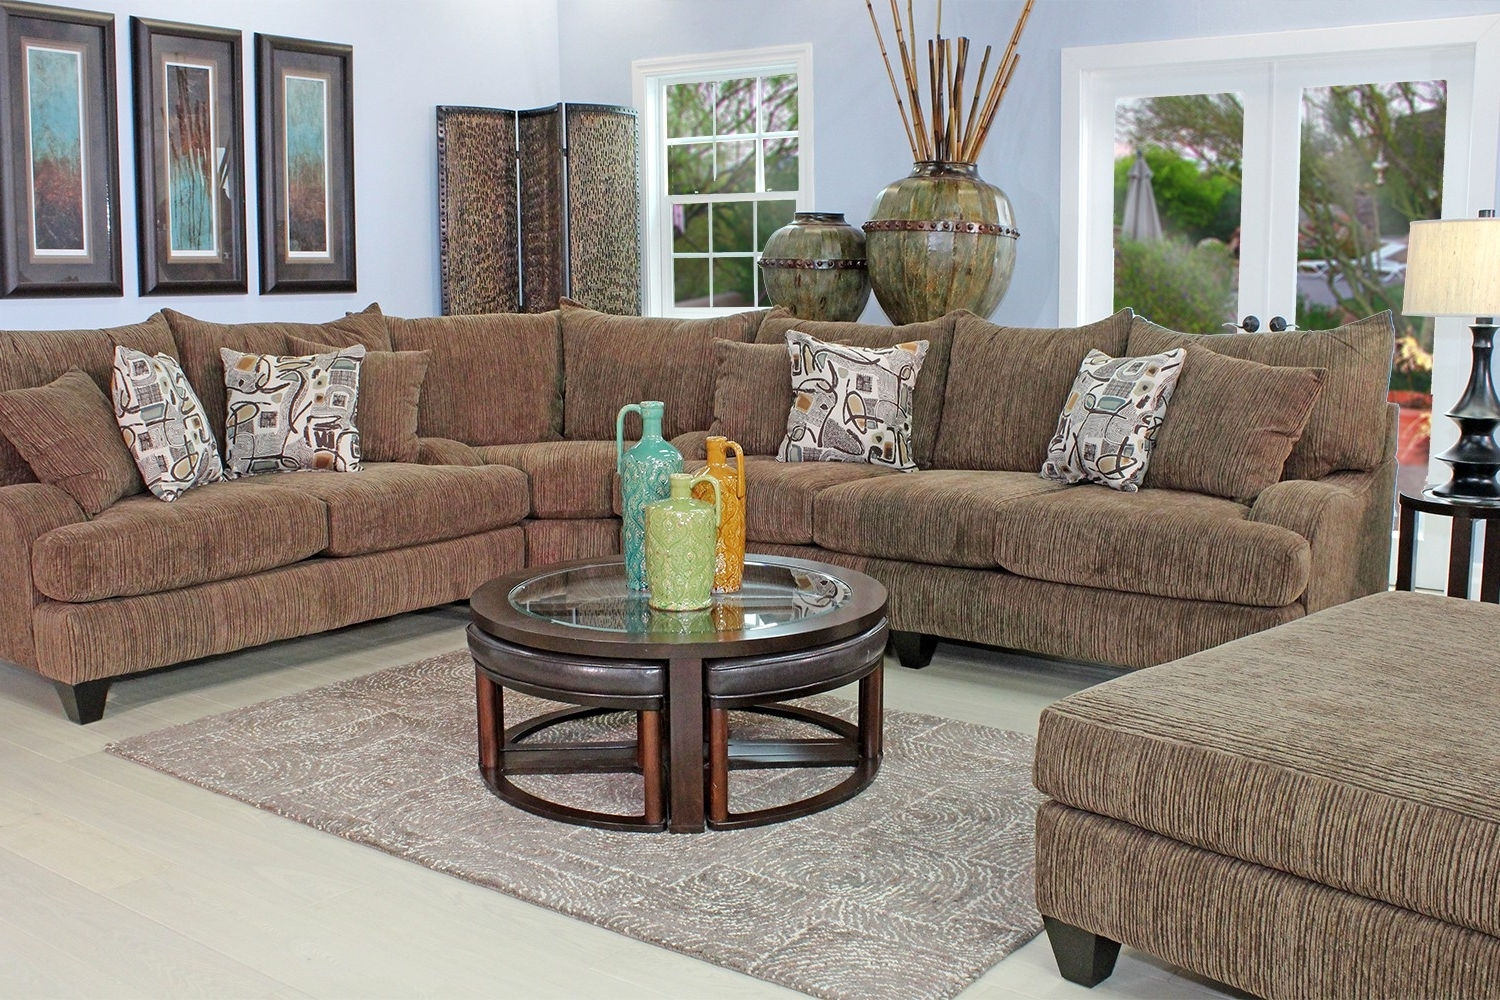 Living Room Sofa And Chair Sets With Regard To 2018 Furniture (View 13 of 20)